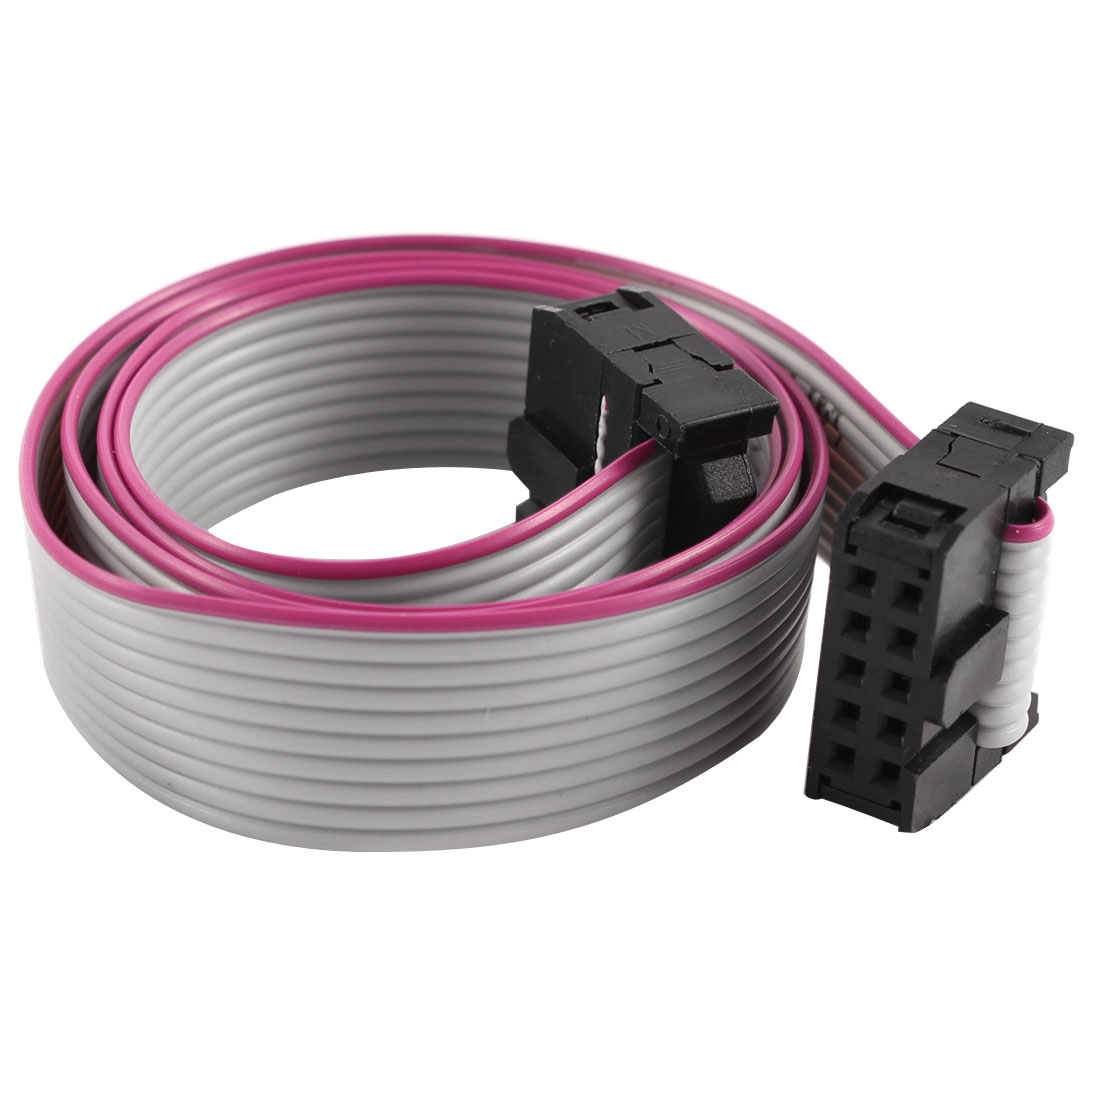 2.54mm Pitch 2x10P 10 Pin 10 Wire Female to Female IDC Flat Ribbon Cable 48cm